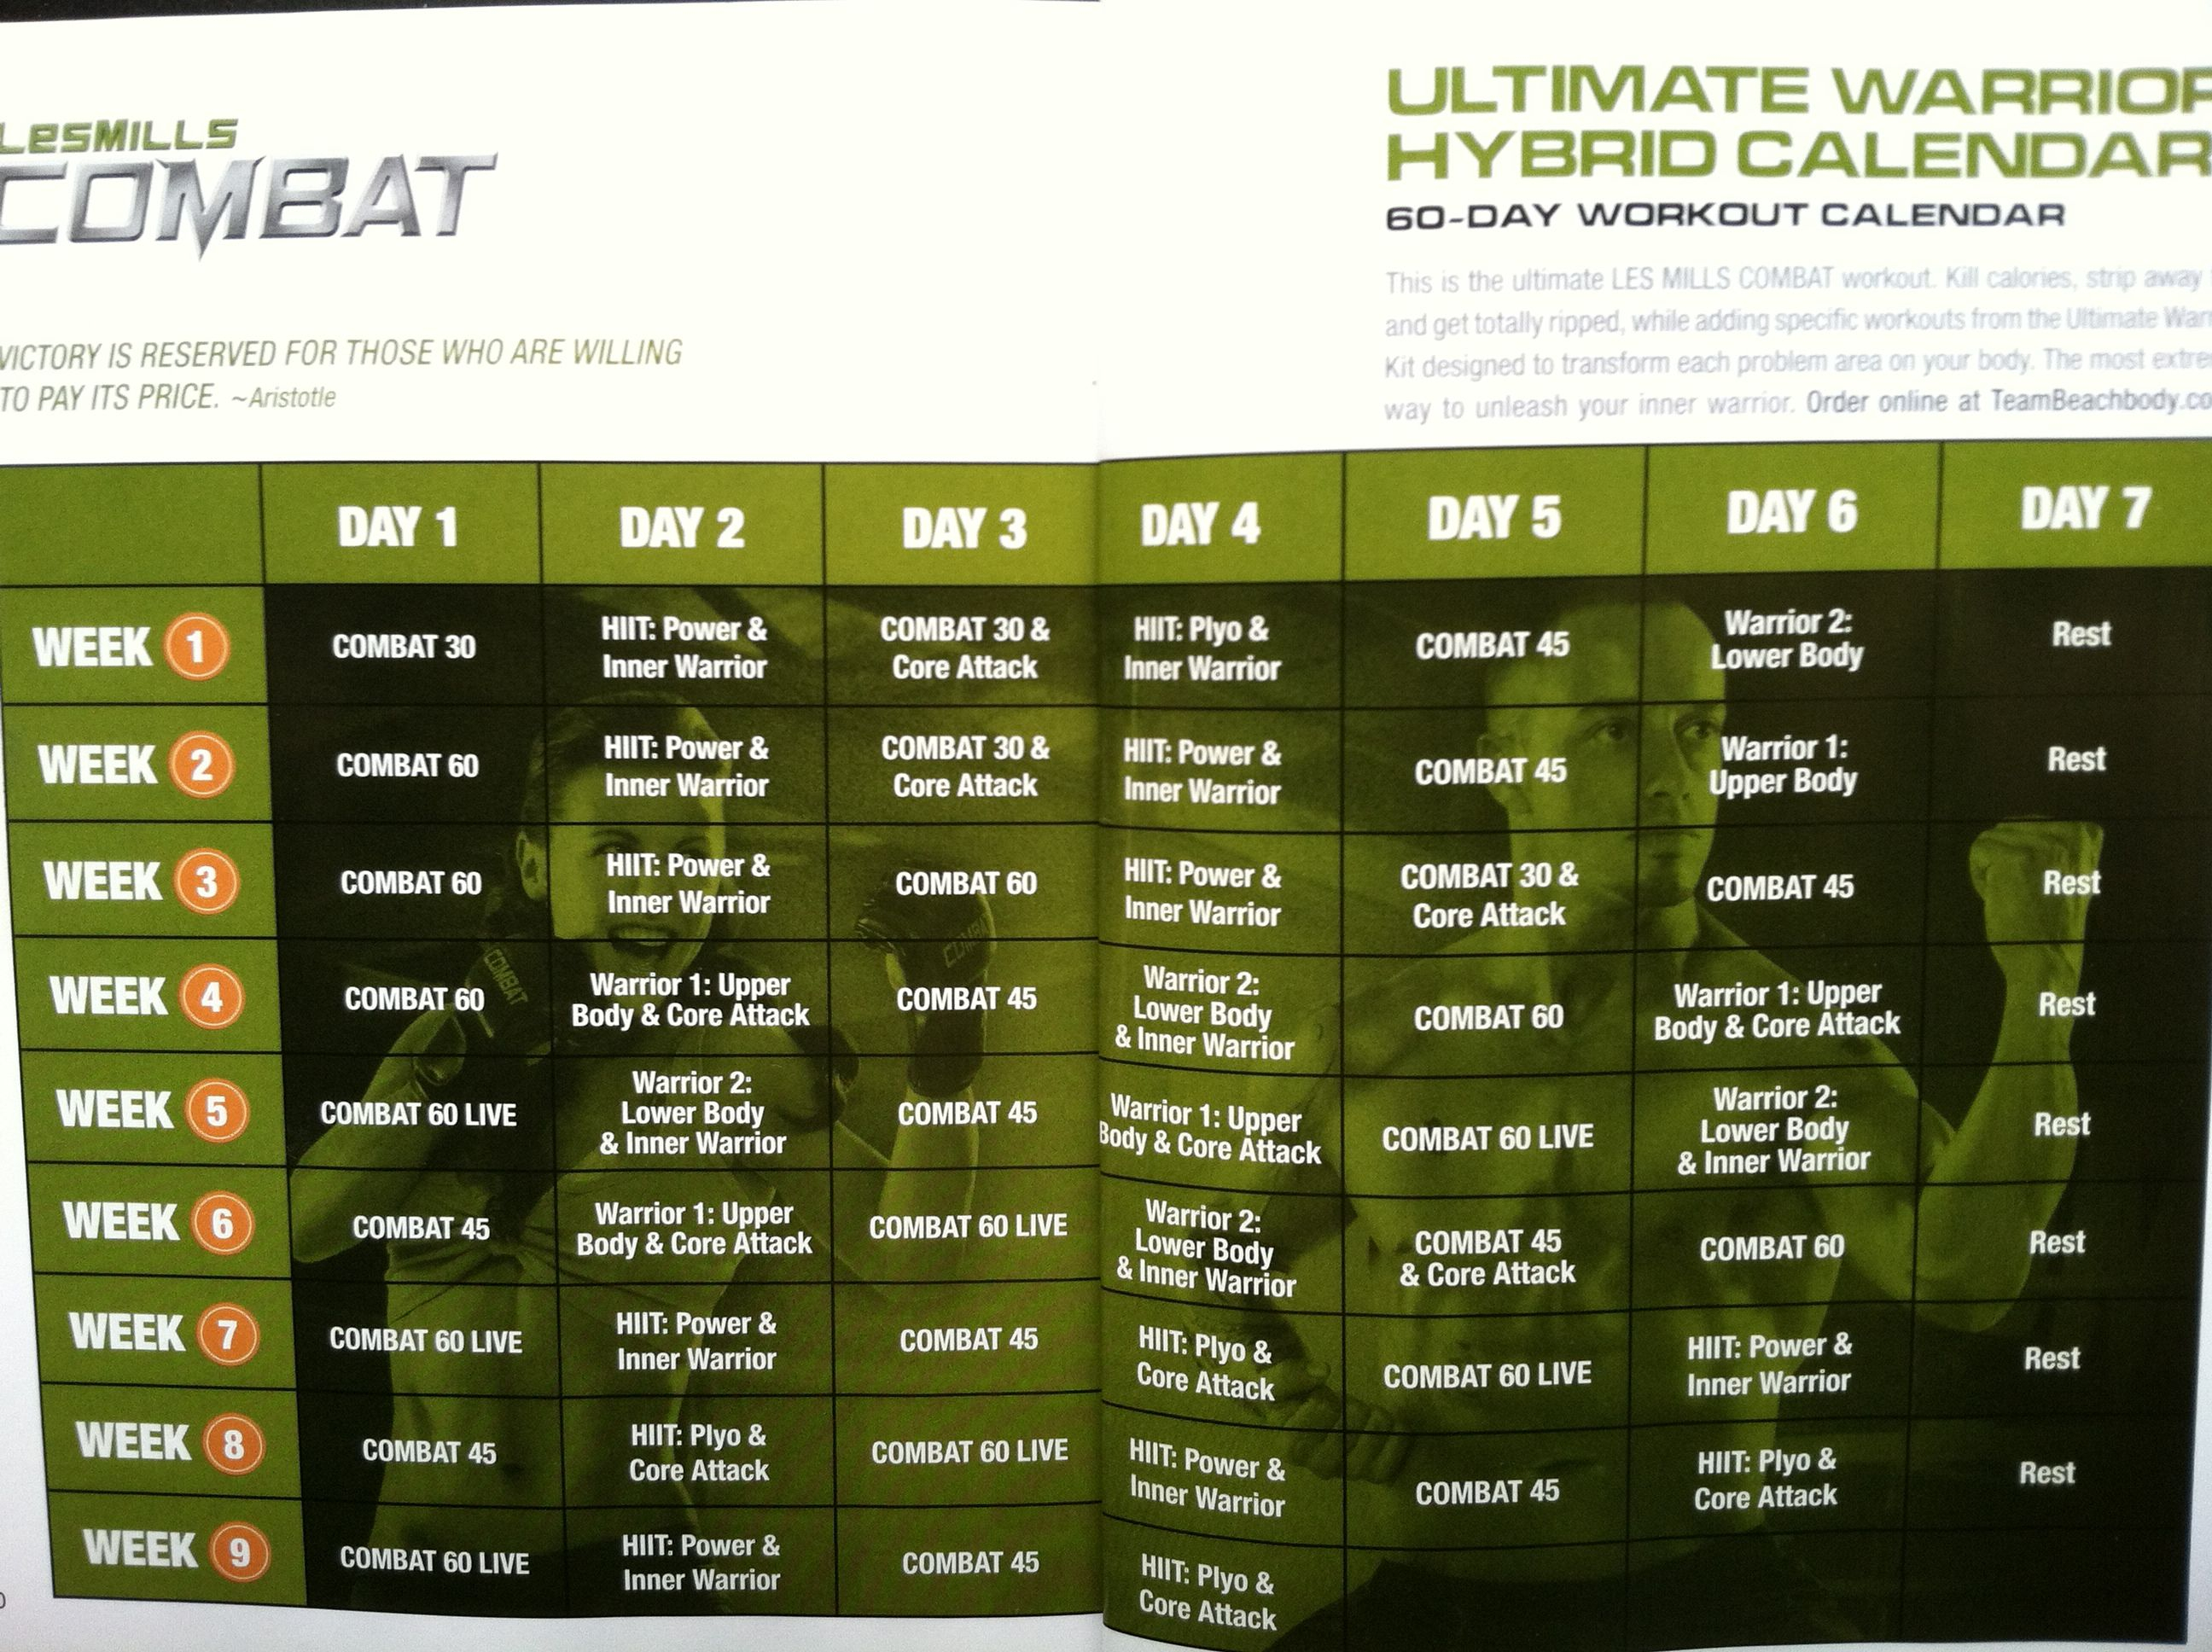 Photo 2,592×1,936 Pixels | Les Mills Combat, Les Mills Regarding Body Combat Workout Schedule